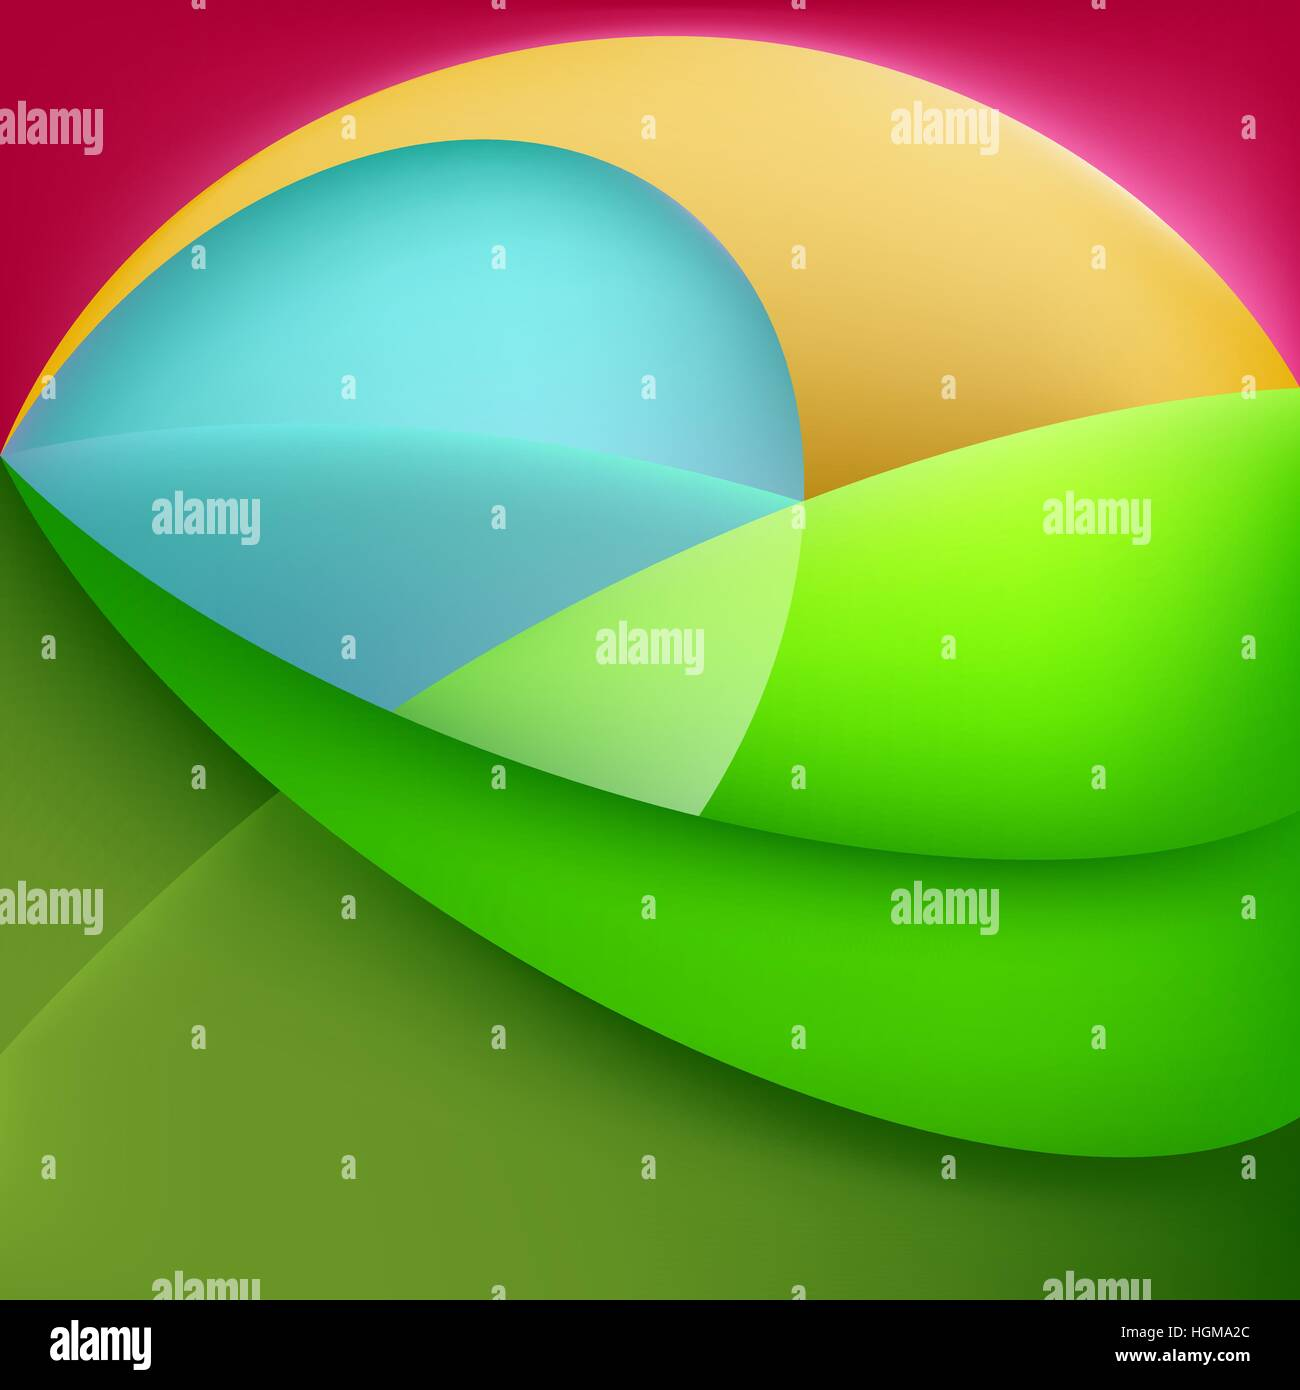 Abstract shapes from curves with transparency and gradients. EPS10 vector illustration - Stock Image